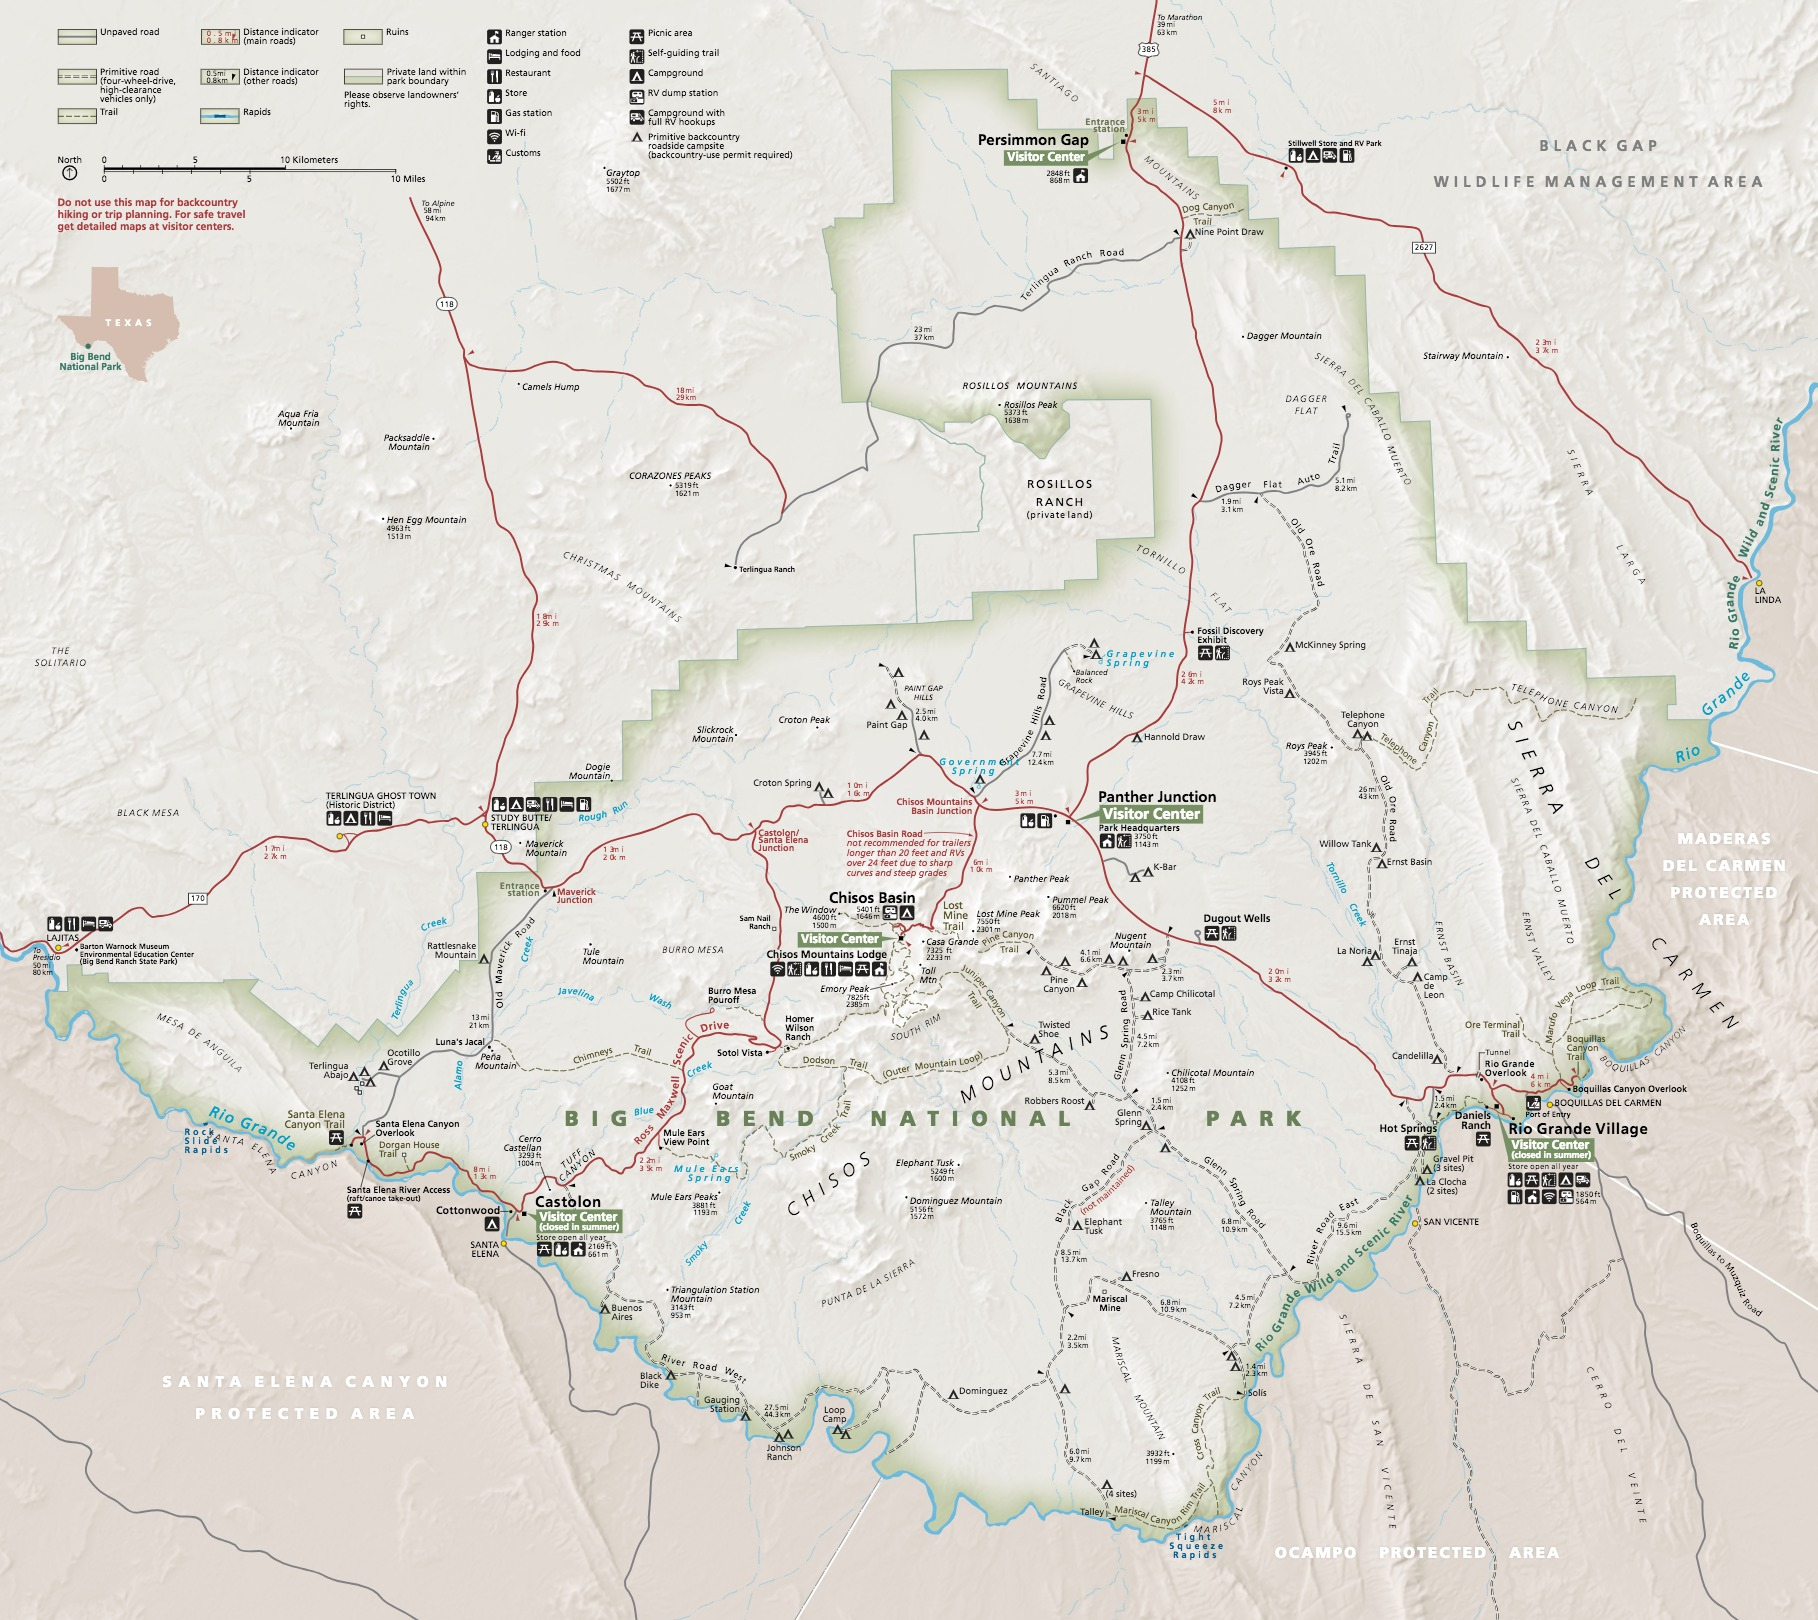 Maps - Big Bend National Park (U.s. National Park Service) - Florida Caverns State Park Map